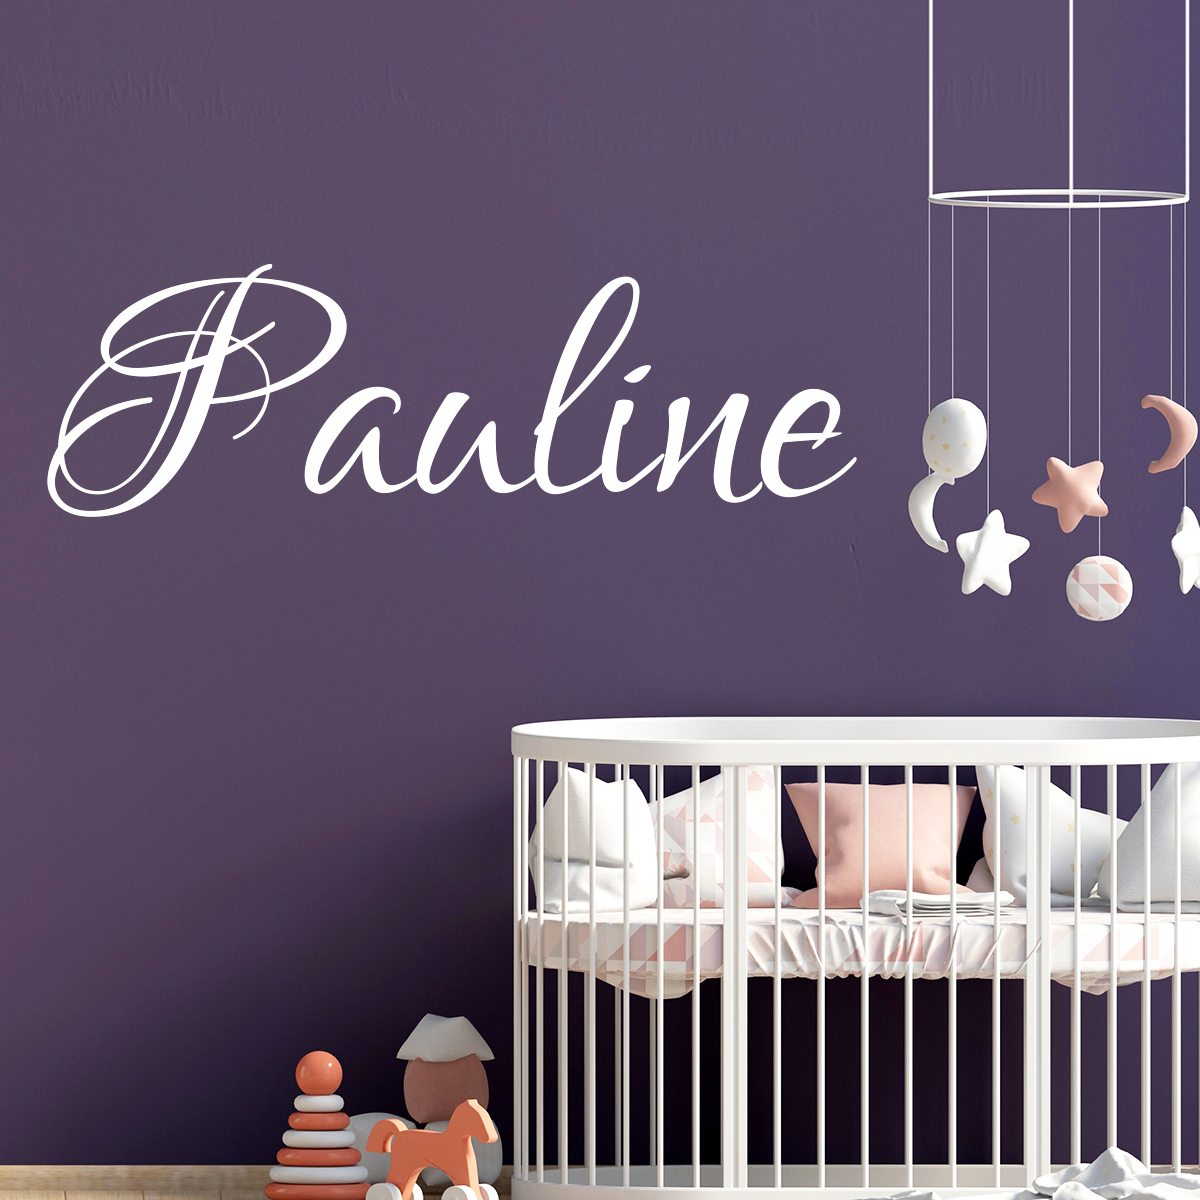 sticker pr nom personnalis calligraphie splendide stickers chambre enfants pr noms ambiance. Black Bedroom Furniture Sets. Home Design Ideas